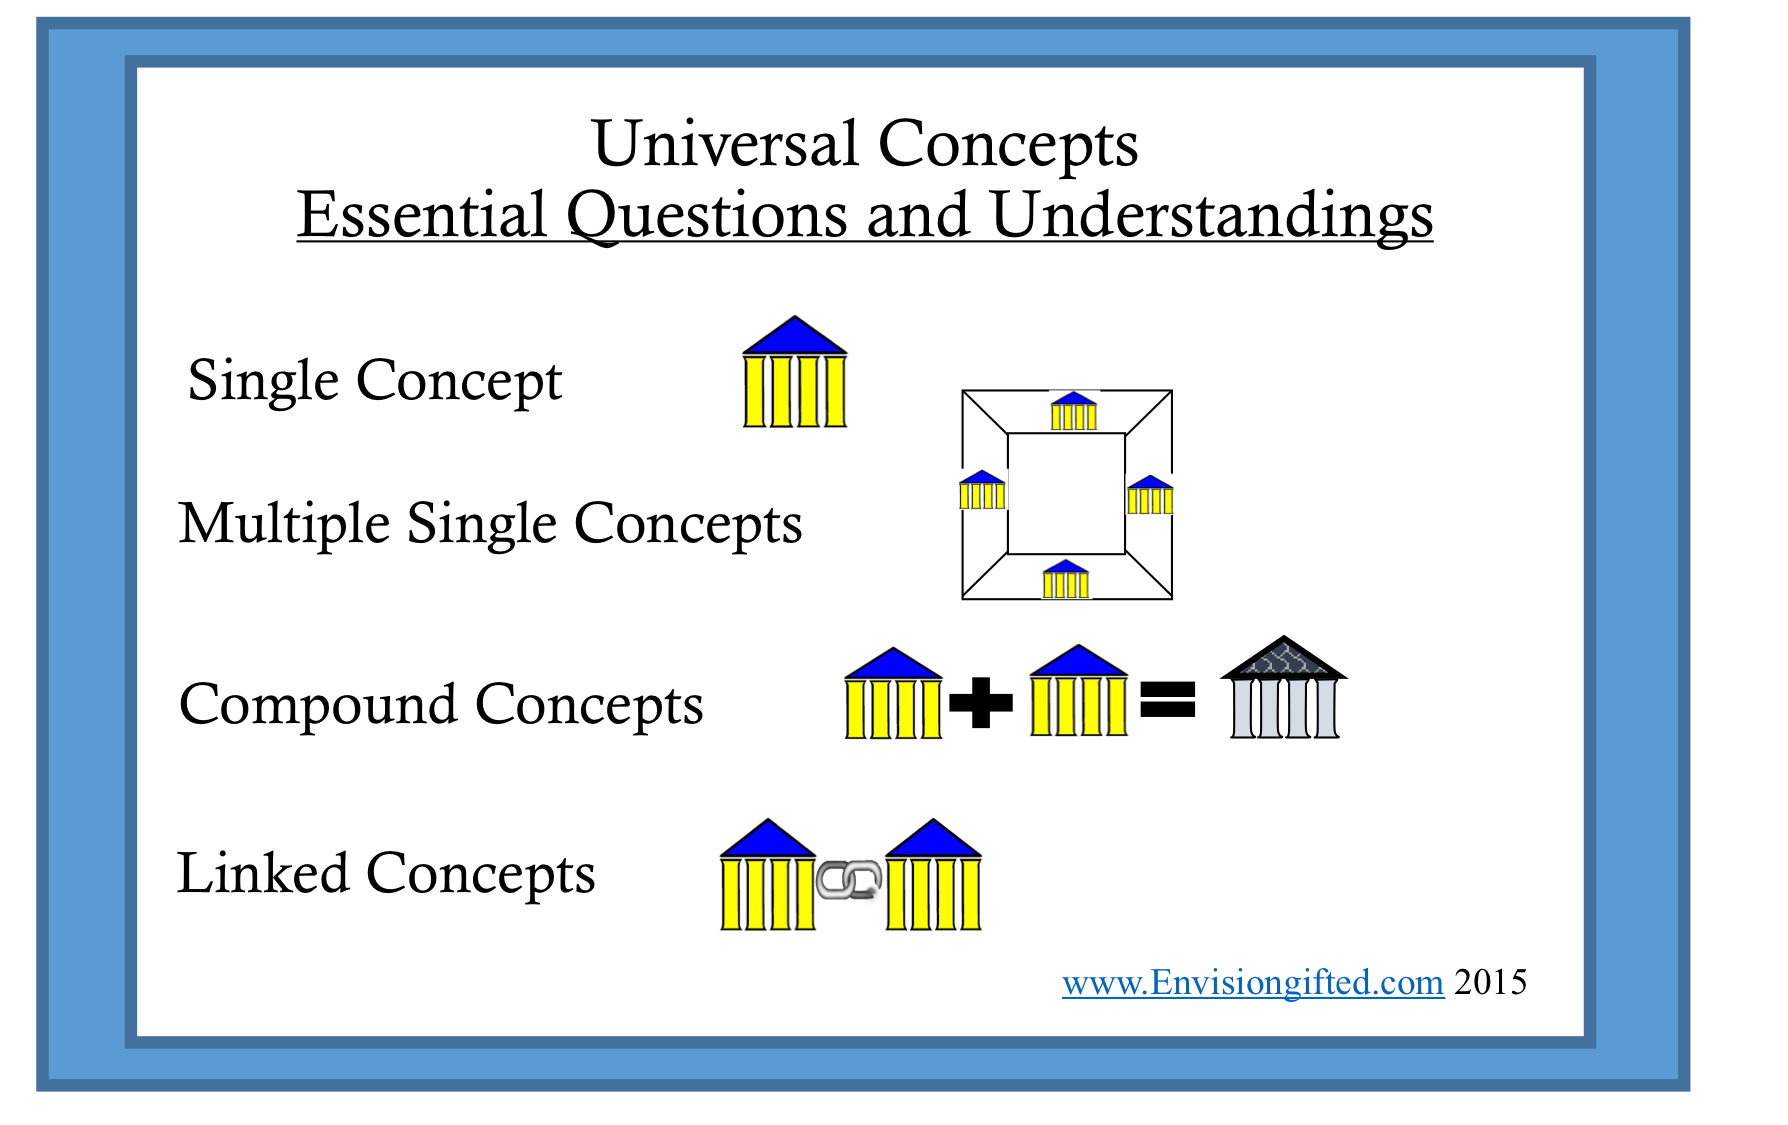 Envision Gifted. Universal-concepts-and-essential-understanding.